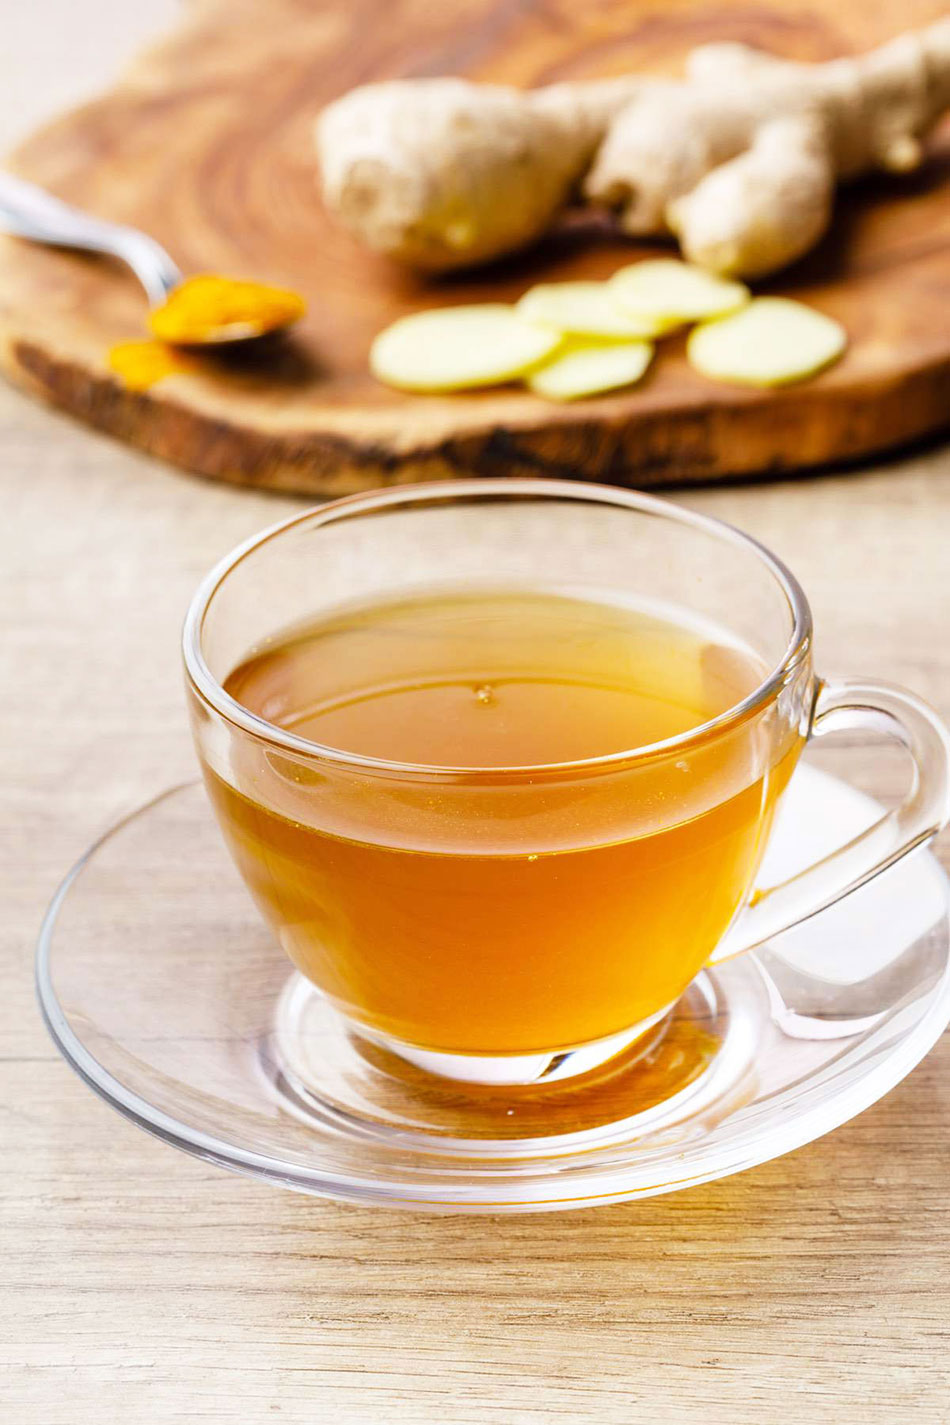 how to prepare ginger tea - how much ginger water per day - Tea With Ginger, Lemon, And Honey For Immunity - Recipe